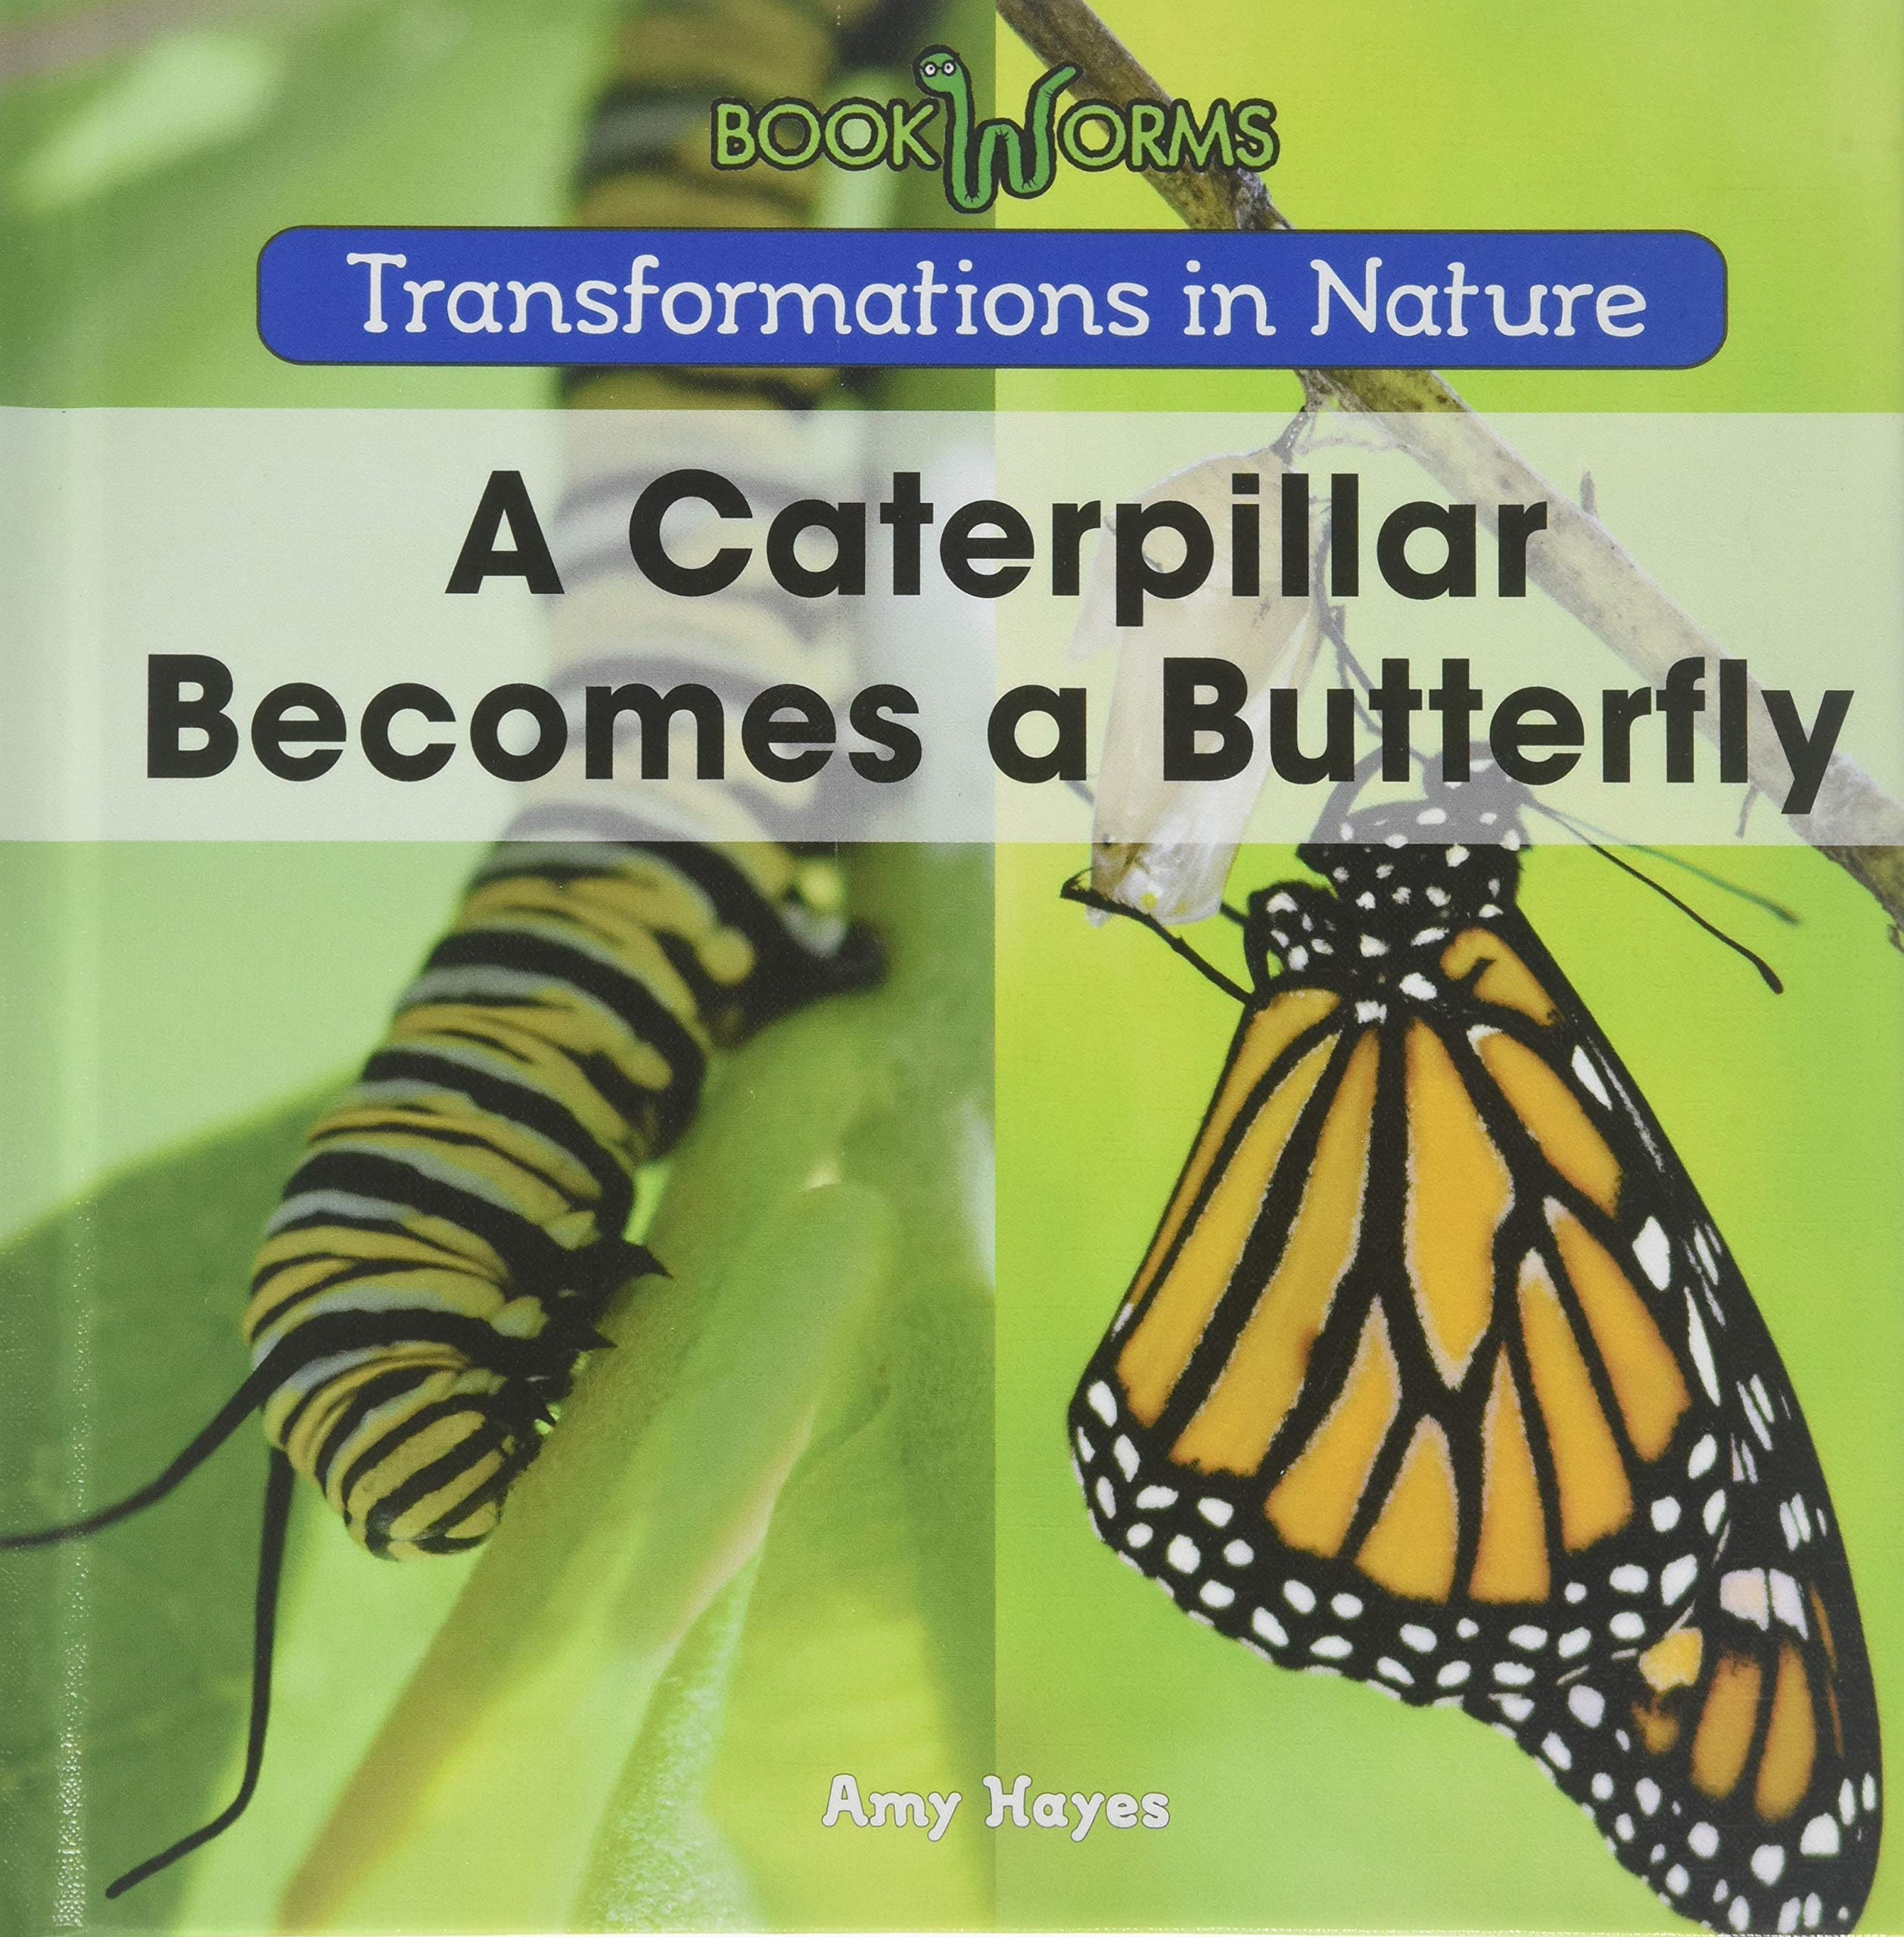 A Caterpillar Becomes a Butterfly (Transformations in Nature) PDF